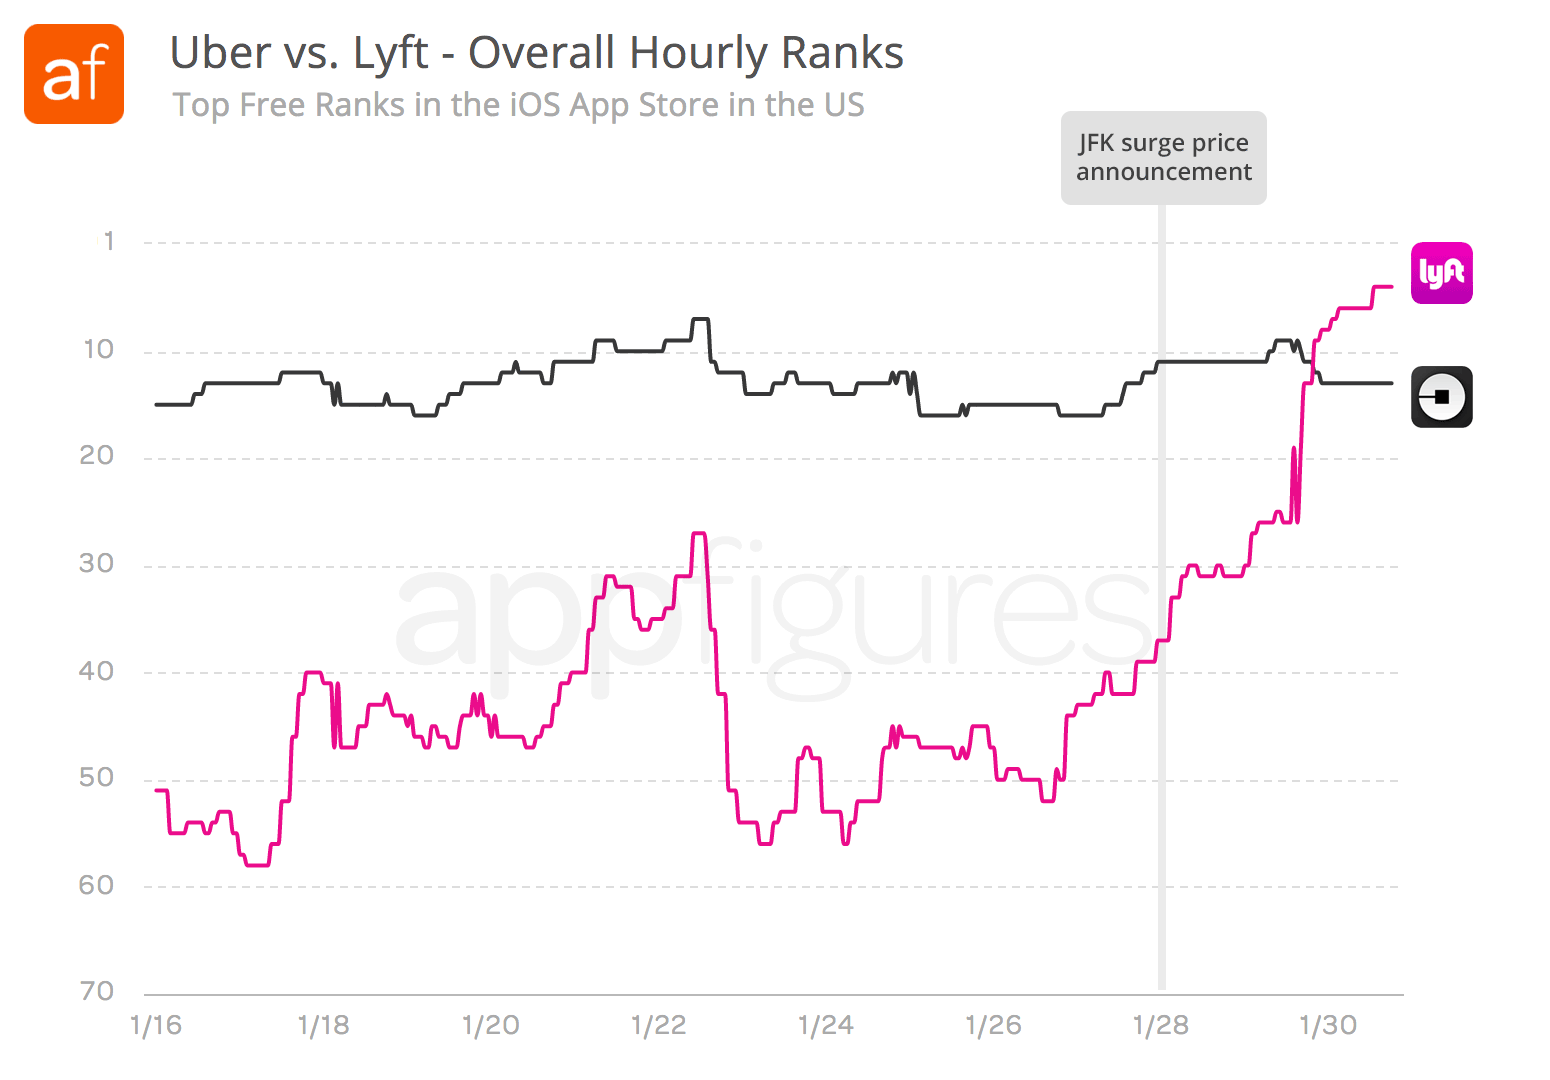 Lyft overtakes Uber in the App Store